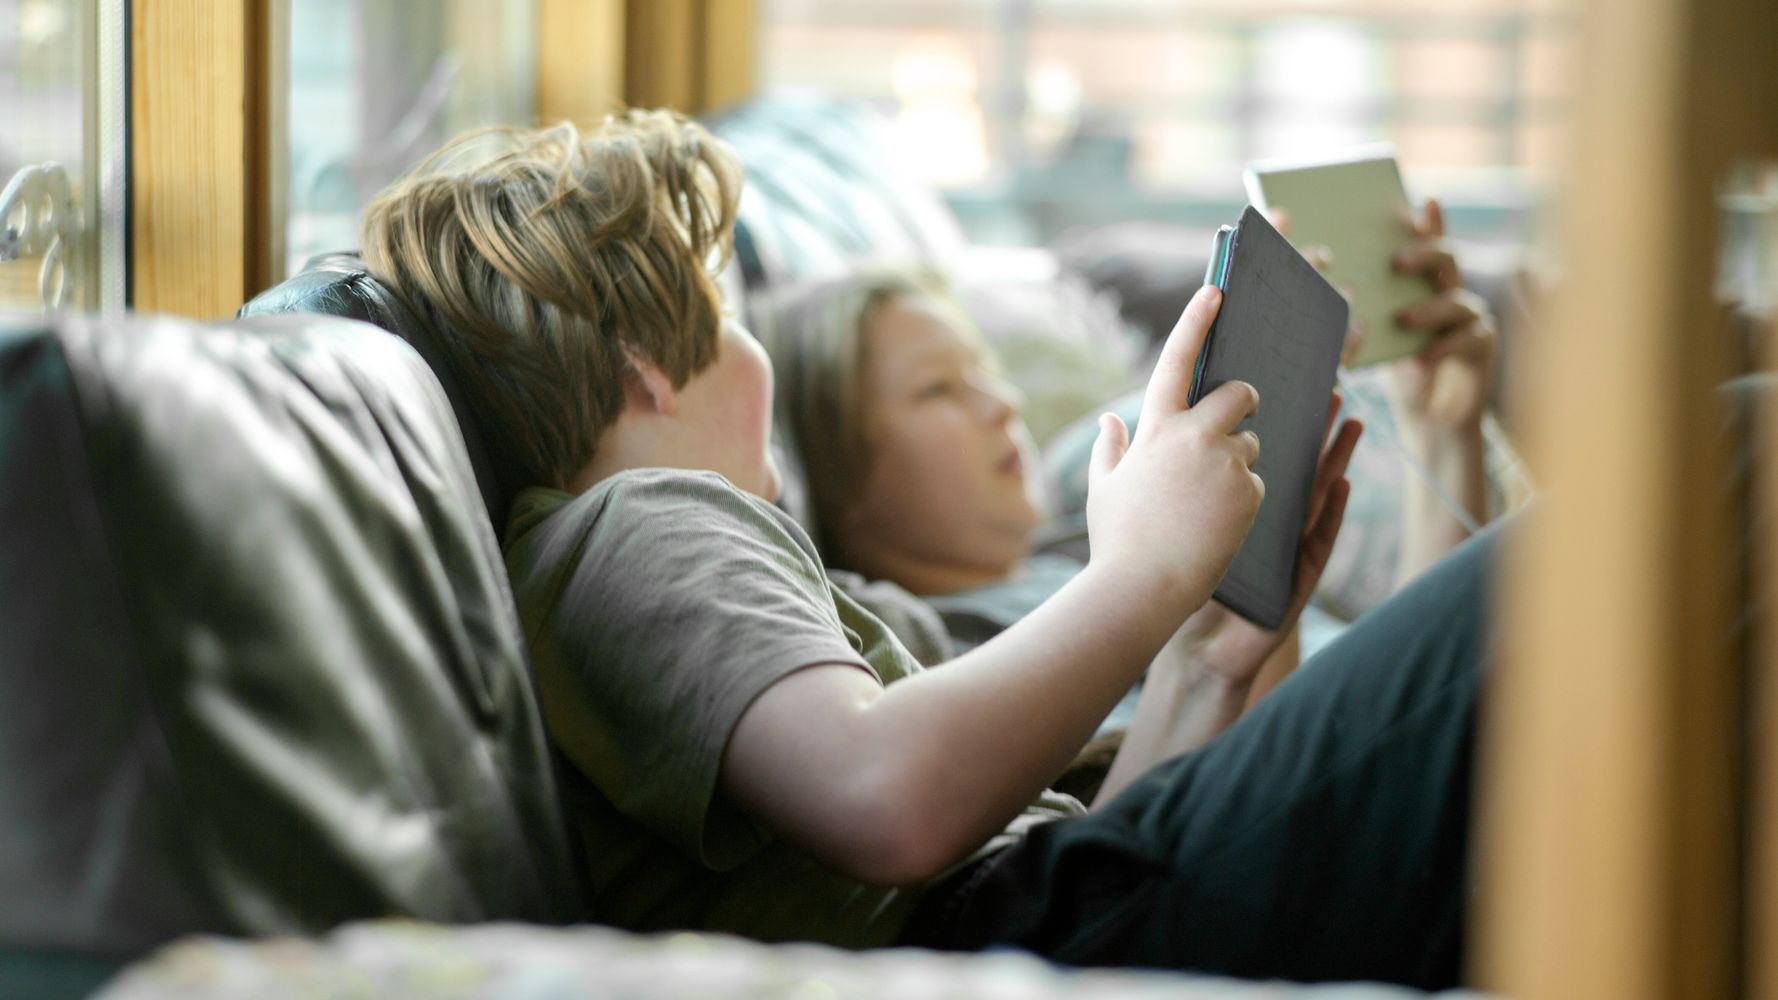 A Damage Control Guide For Parents Whose Kids Are On Screens All Day